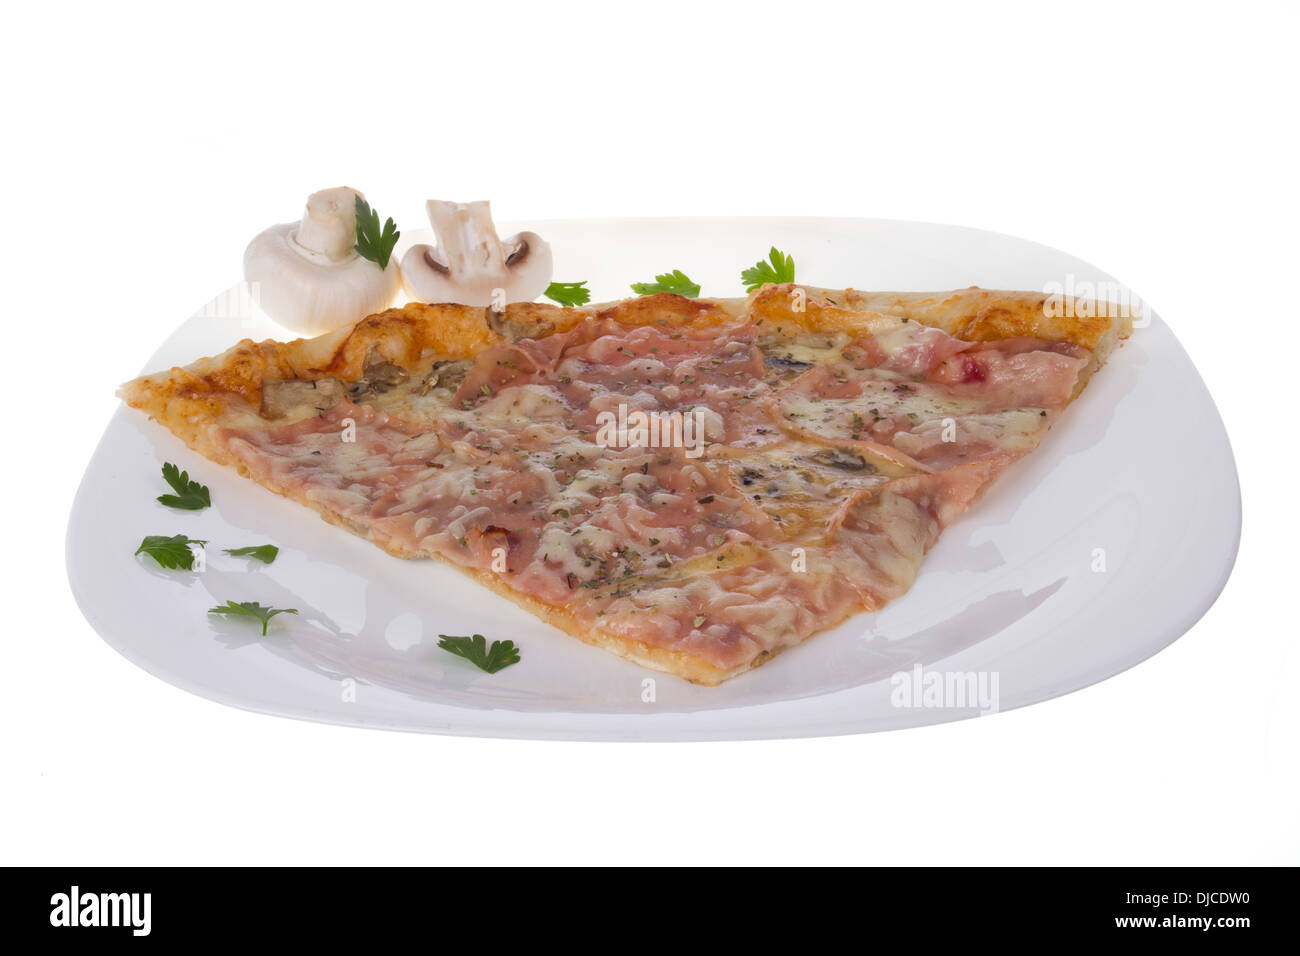 pizza hut slice on white plate with mushrooms and parsley - Stock Image